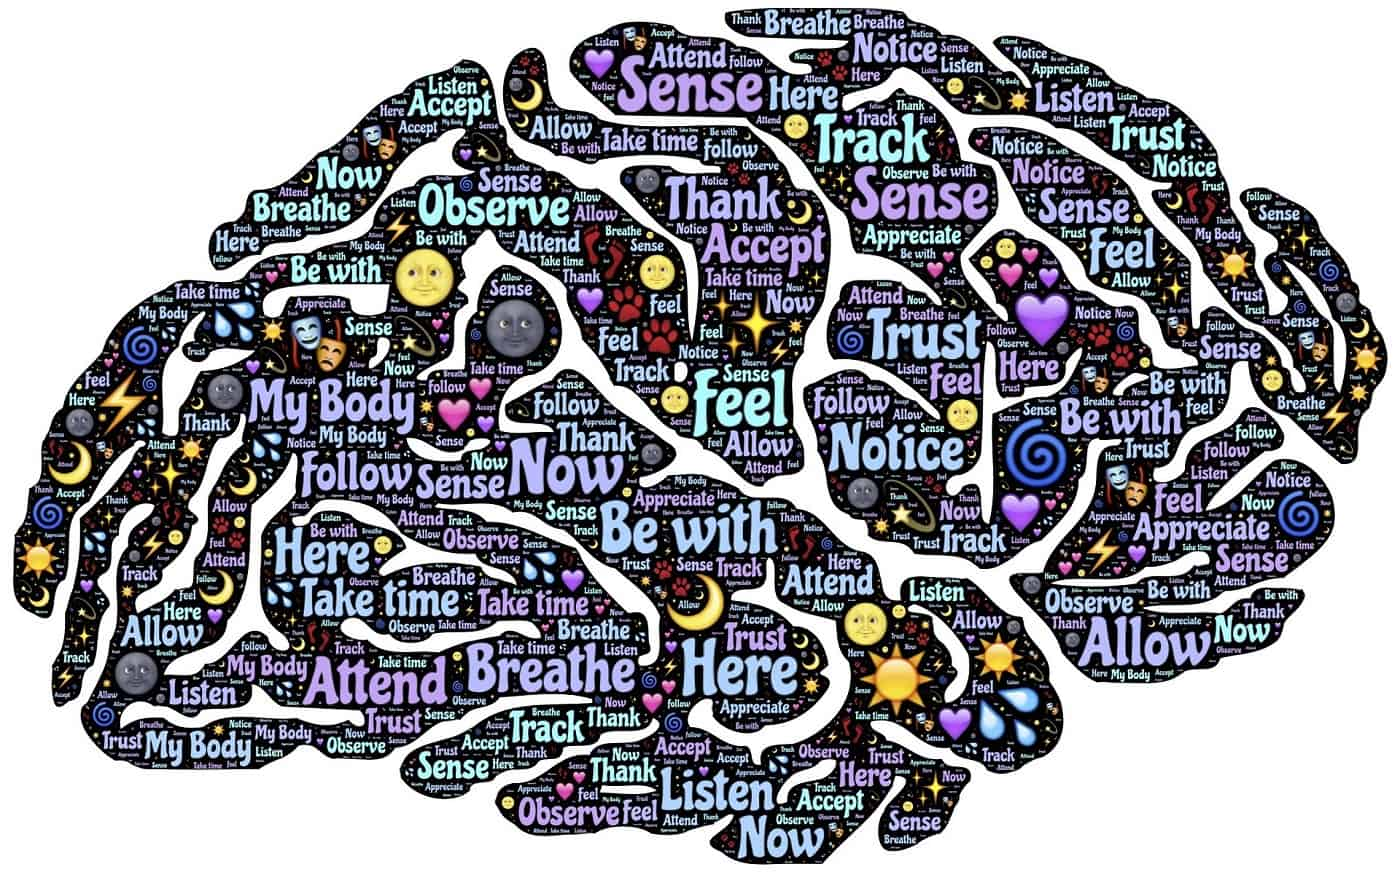 Drawing of brain with words and icons about meditation on it - Meditation club